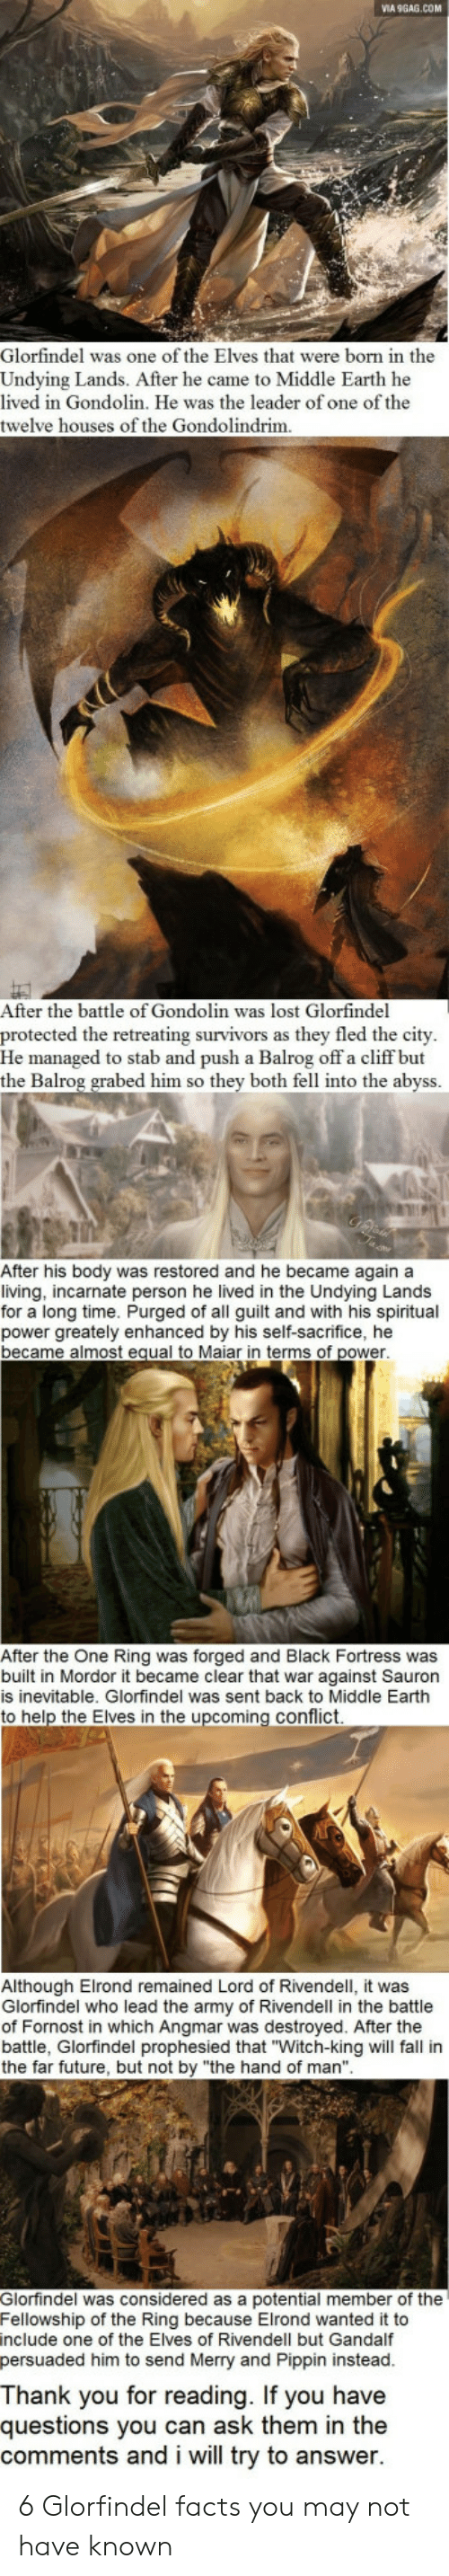 """Pippin: MA 9GAG.COM  Glorfindel was one of the Elves that were born in the  Undying Lands. After he came to Middle Earth he  lived in Gondolin. He was the leader of one of the  twelve houses of the Gondolindrim  e leaeroforth  After the battle of Gondolin was lost Glorfindel  protected the retreating survivors as they fled the city  He managed to stab and push a Balrog off a cliff but  the Balrog grabed him so thev b  oth fell into the abyss  After his body was restored and he became againa  living, incarnate person he lived in the Undying Lands  for a long time. Purged of all guilt and with his spiritual  power greately enhanced by his self-sacrifice, he  became almost equal to Maiar in terms of power  After the One Ring was forged and Black Fortress was  built in Mordor it became clear that war against Sauron  is inevitable. Glorfindel was sent back to Middle Earthh  to help the Elves in the upcoming conflict  Although Elrond remained Lord of Rivendell, it was  Glorfindel who lead the army of Rivendell in the battle  of Fornost in which Angmar was destroyed. After the  battle, Glorfindel prophesied that """"Witch-king will fall in  the far future, but not by """"the hand of man""""  Glorfindel was considered as a potential member of the  Fellowship of the Ring because Elrond wanted it to  include one of the Elves of Rivendell but Gandalf  persuaded him to send Merry and Pippin instead  f the Elves rry and Pippin  Thank you for reading. If you have  questions you can ask them in the  comments and i will try to answer 6 Glorfindel facts you may not have known"""